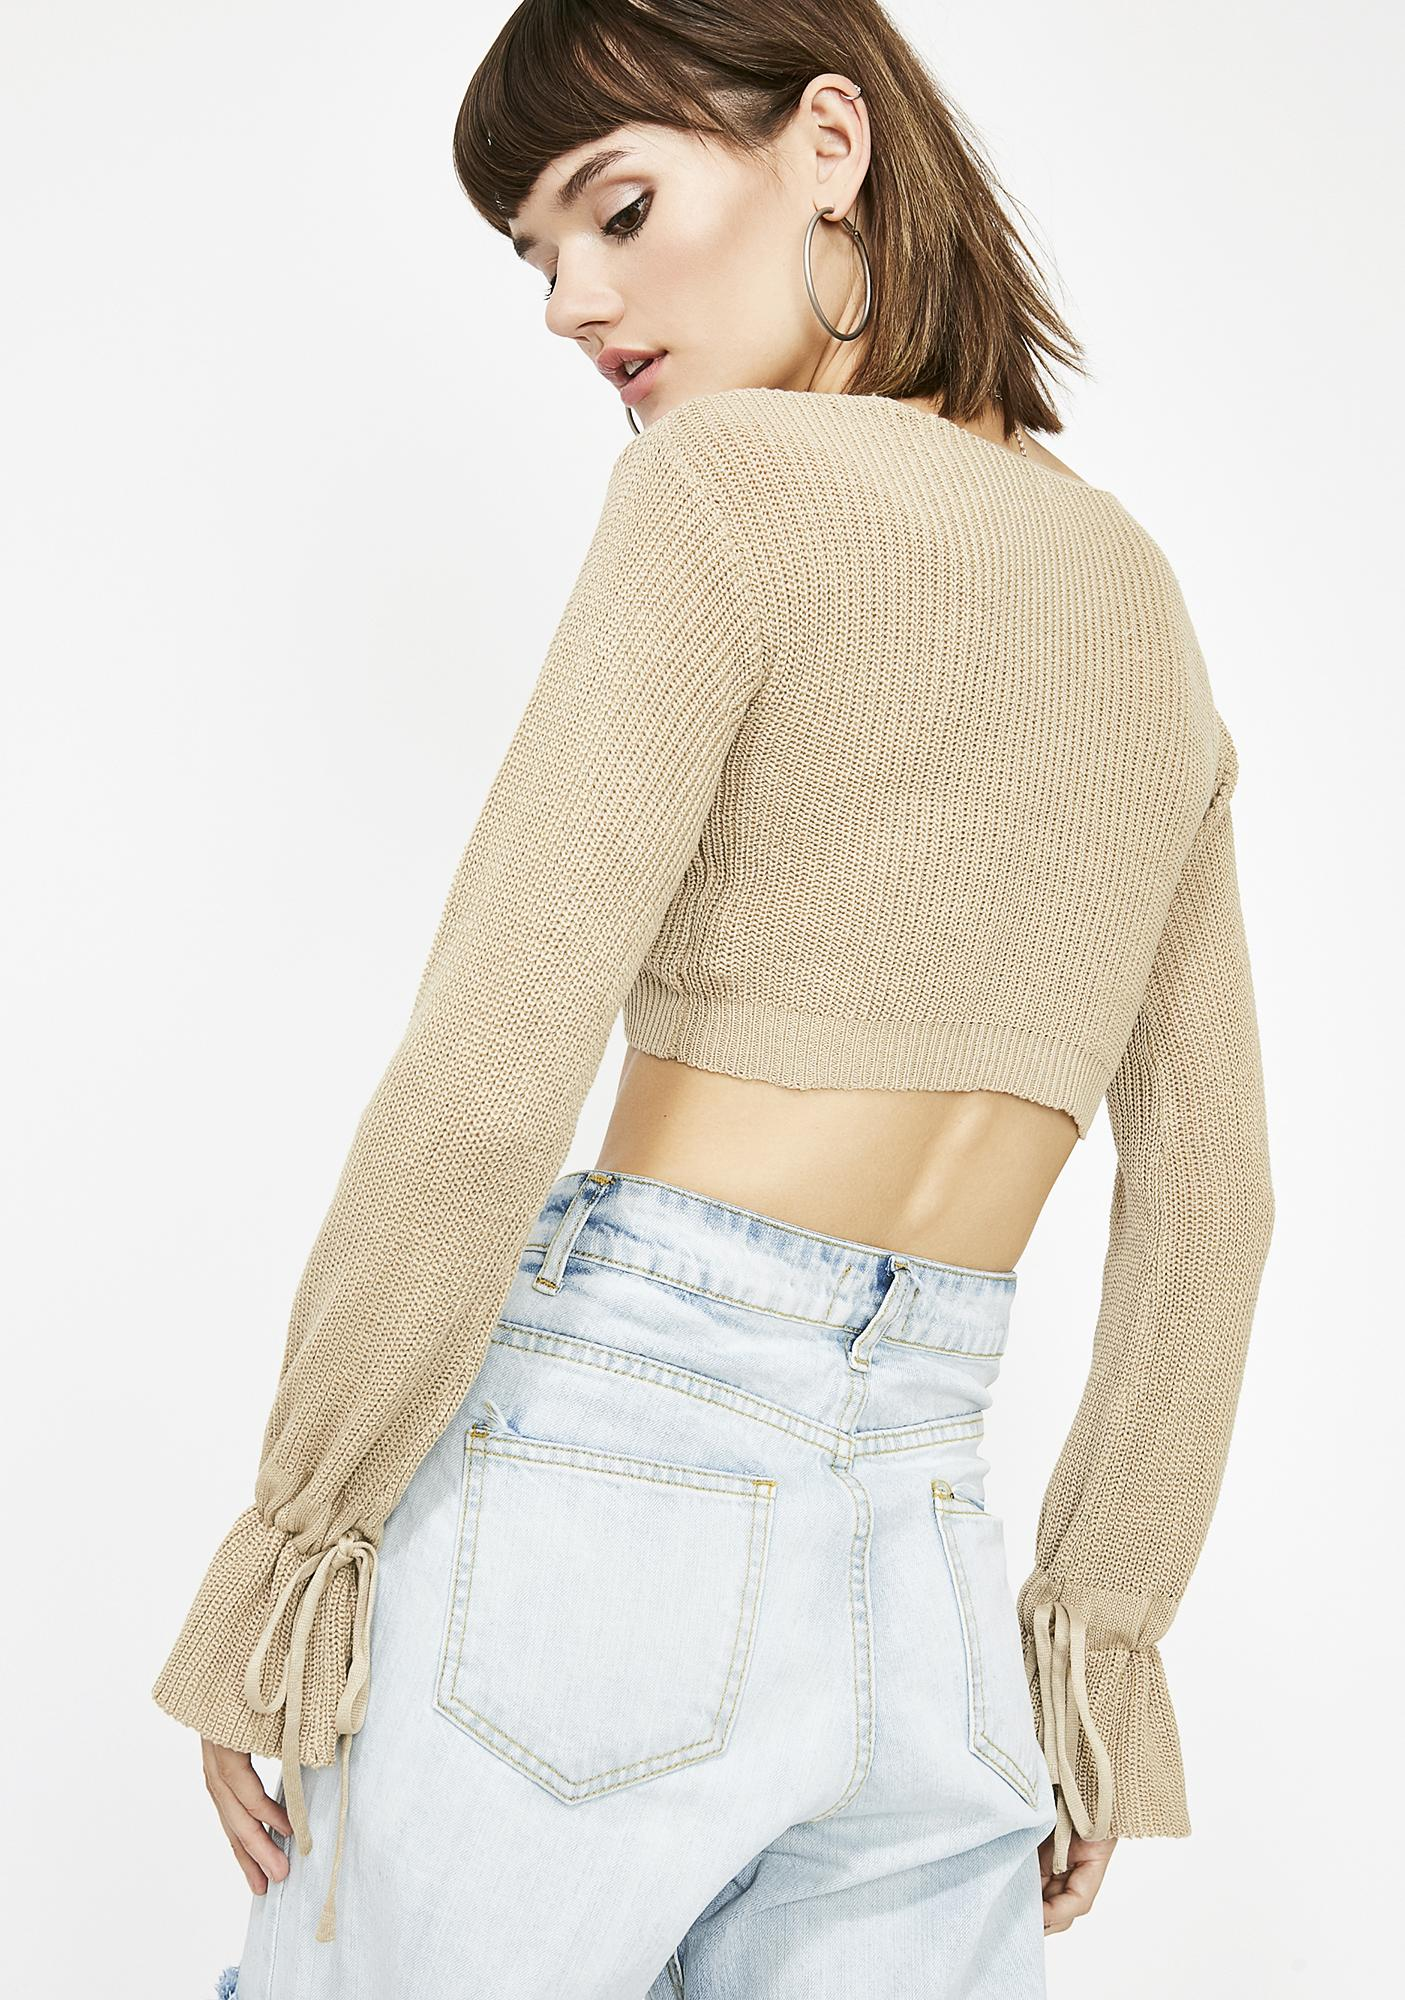 Naturally Livin' For It Crop Sweater